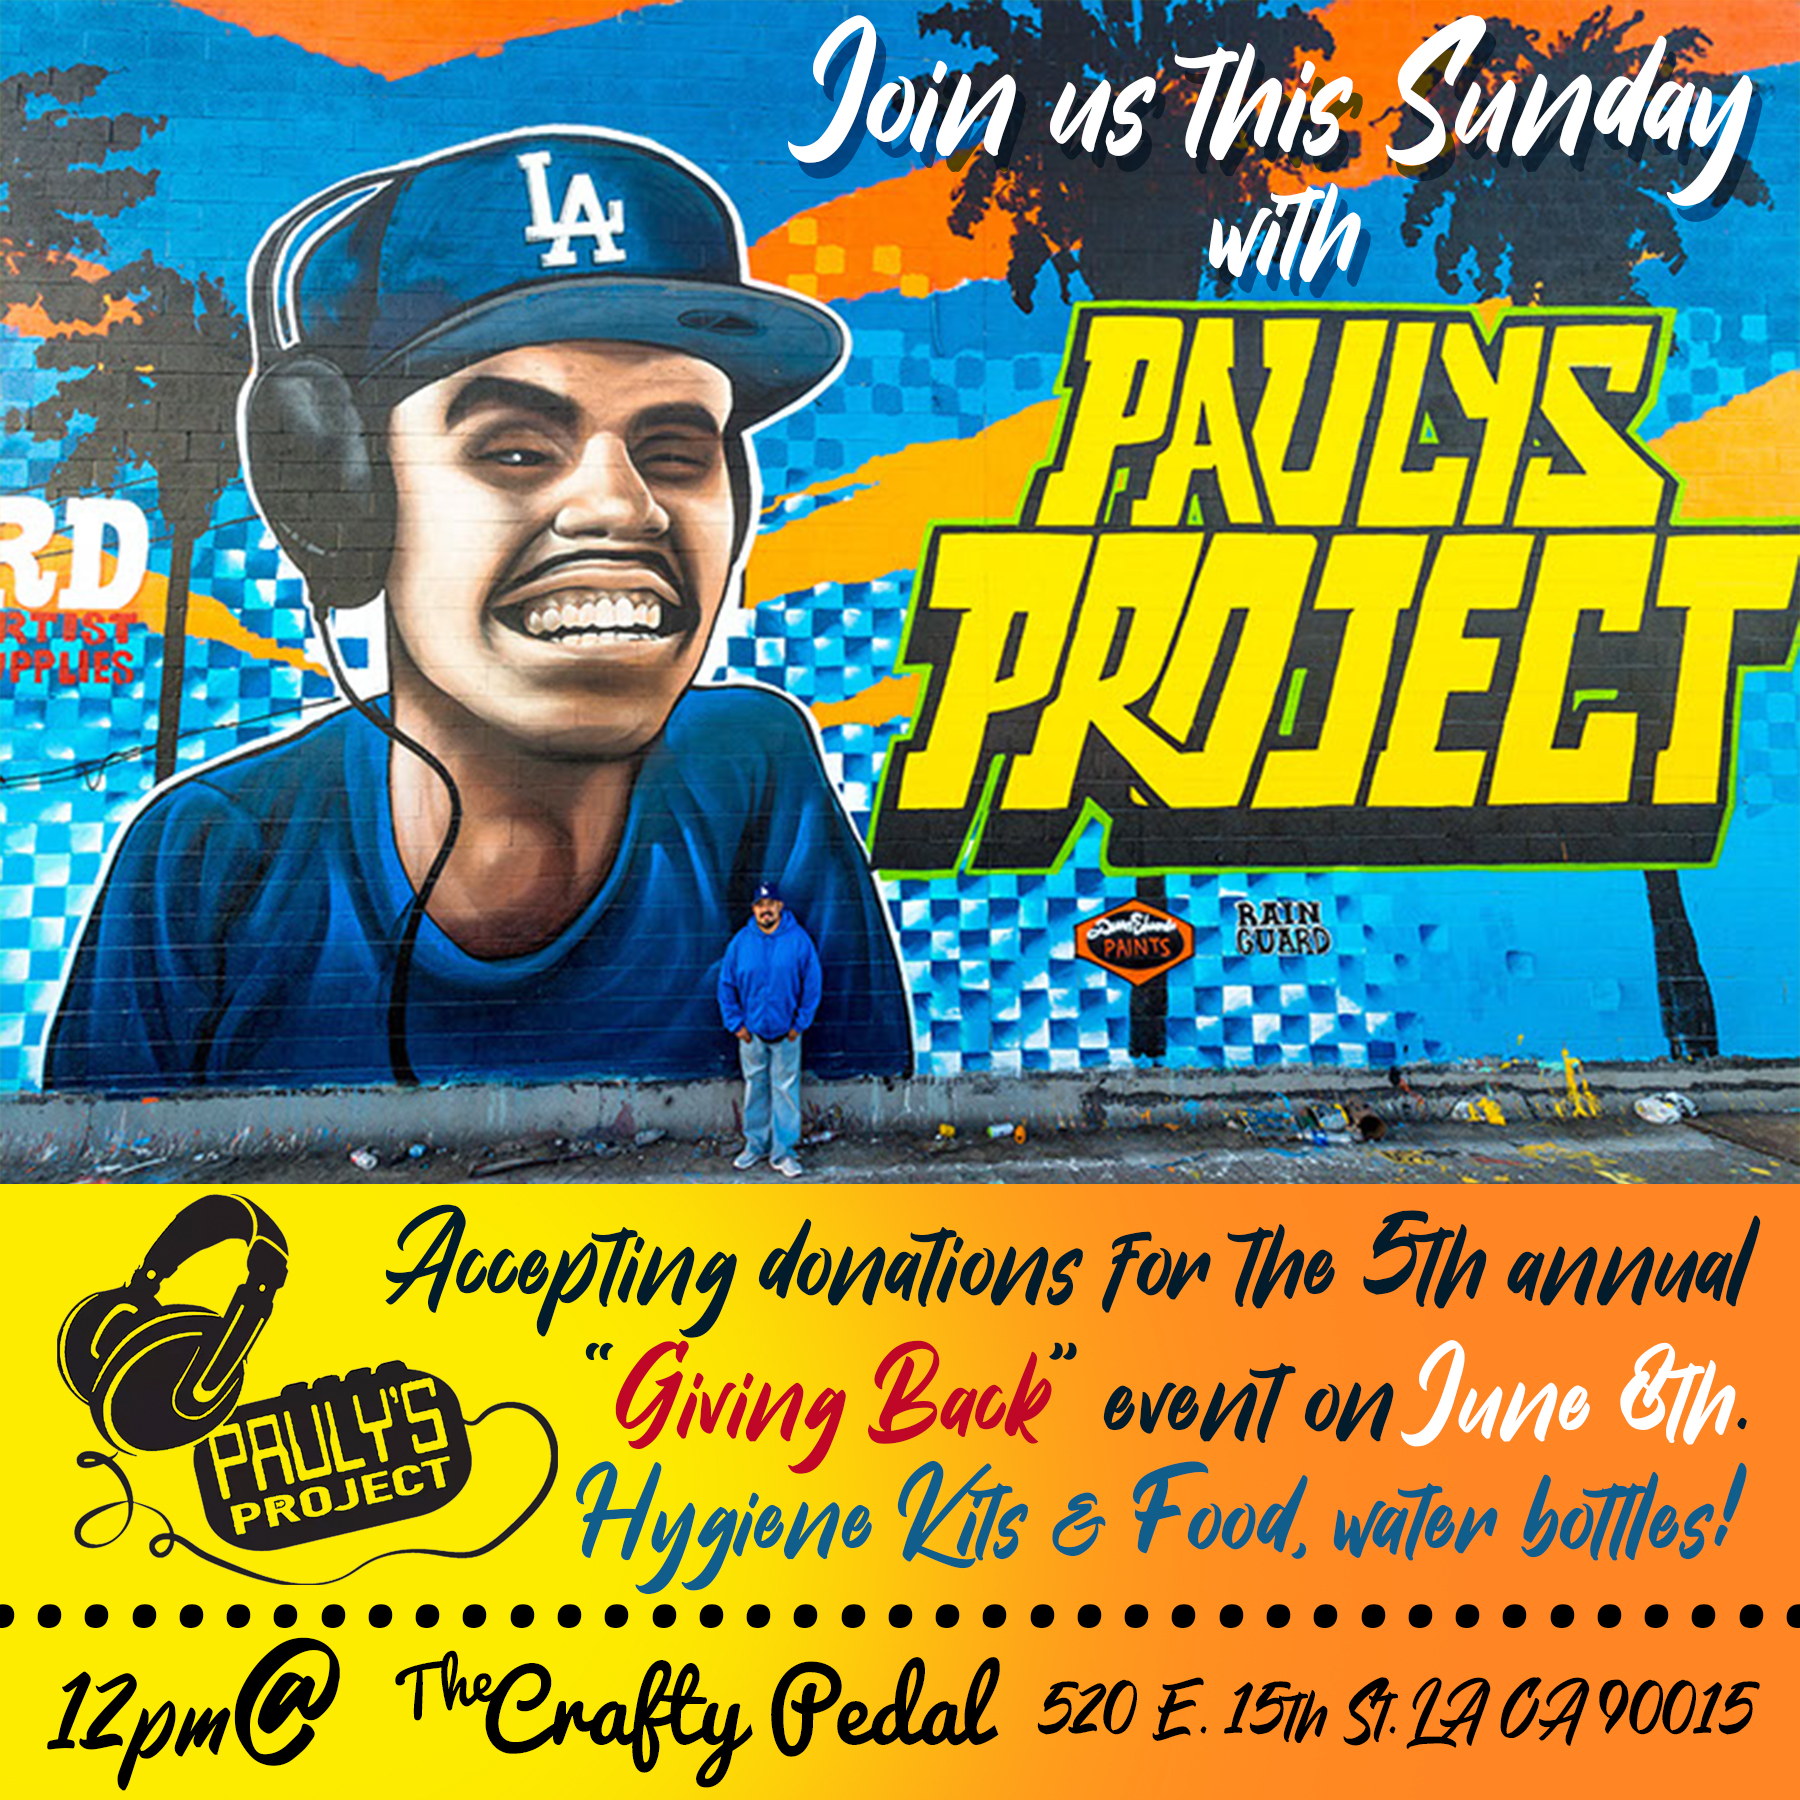 """Paulys Project -  Donation Day - Join us this Sunday June 2nd as we collect Hygiene and food supples to be distributed at the 5th Annual """"GIVING BACK"""" event by Pauly's Project on June 8th. We will be at The Crafty Pedal from 12 Noon to 3PM accepting and organizing donations to prepare our pancake Breakfast, Hugiene kits and T-shirts. We hope you can join us and help us spread the word. For more details on Pauly's Project please visit: www.paulysproject.orgVolunteers and donations are always appreciated!"""